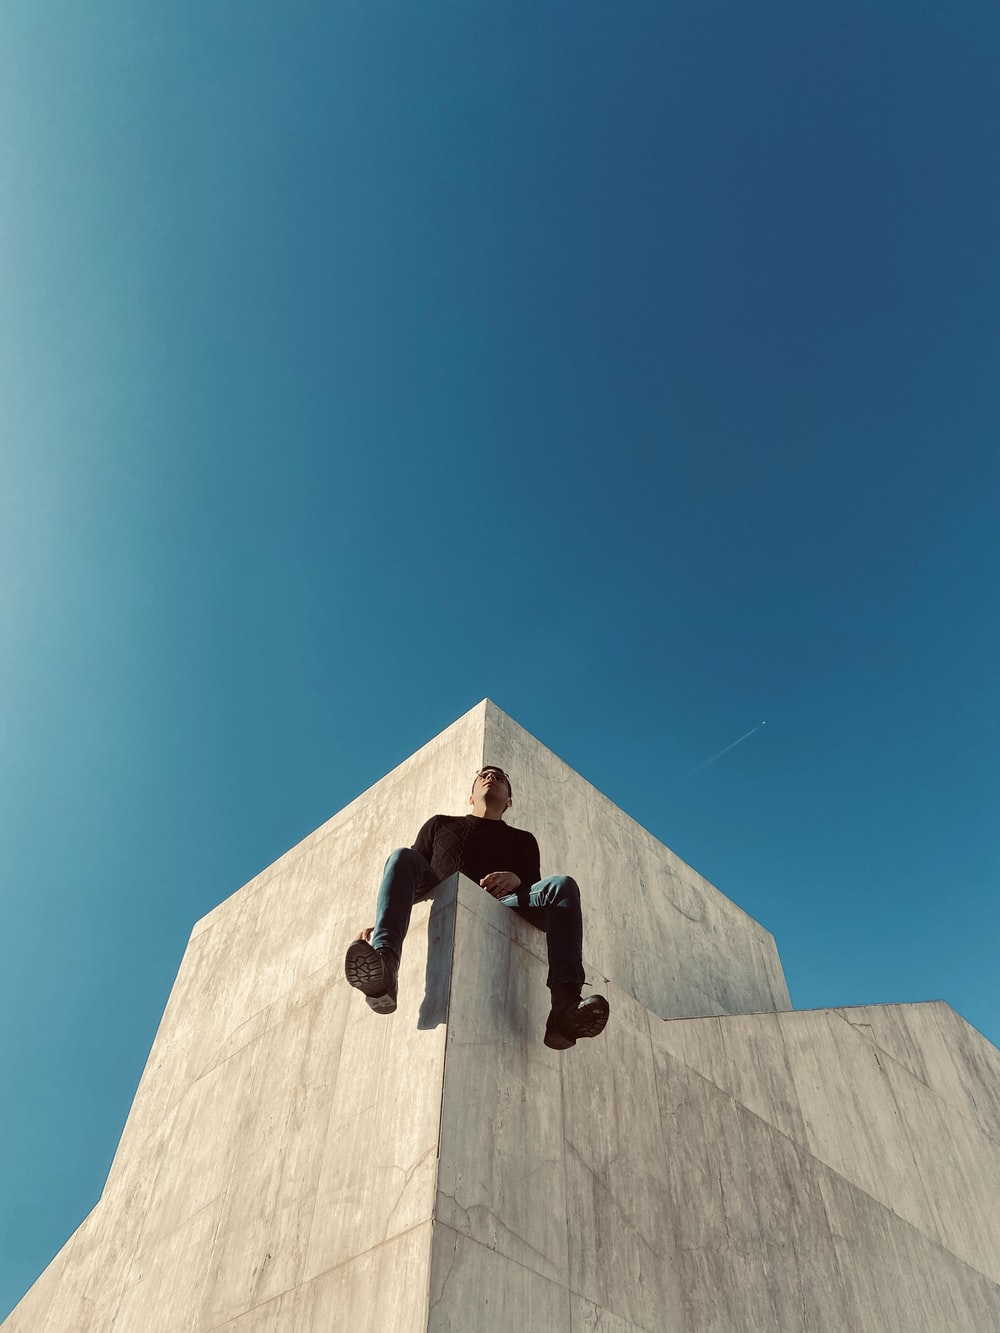 man sitting on the building